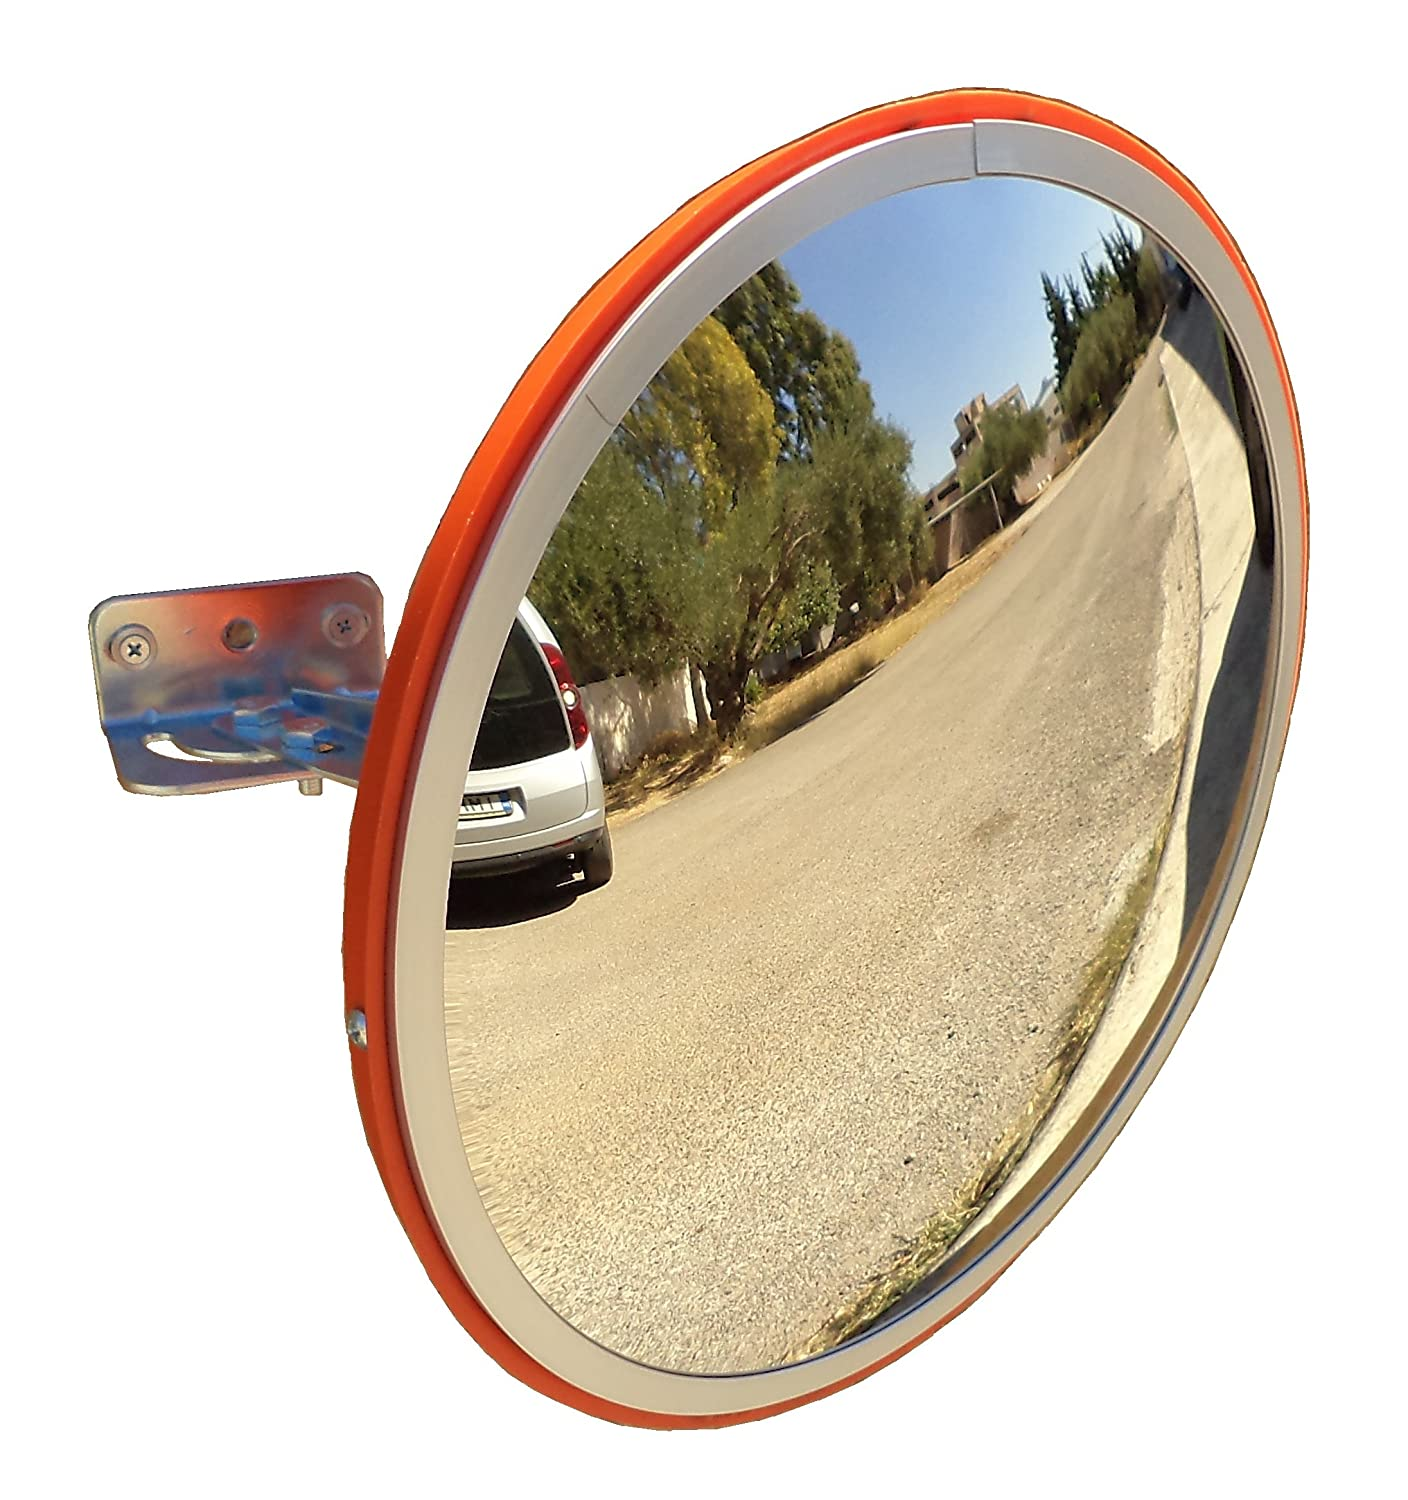 """Convex Traffic Mirror 12"""" for Driveway, Warehouse and Garage Safety or Store and Office Security, with Adjustable Wall Fixing Bracket to Eliminate Blind Spots and Corners Indoor and Outdoor"""